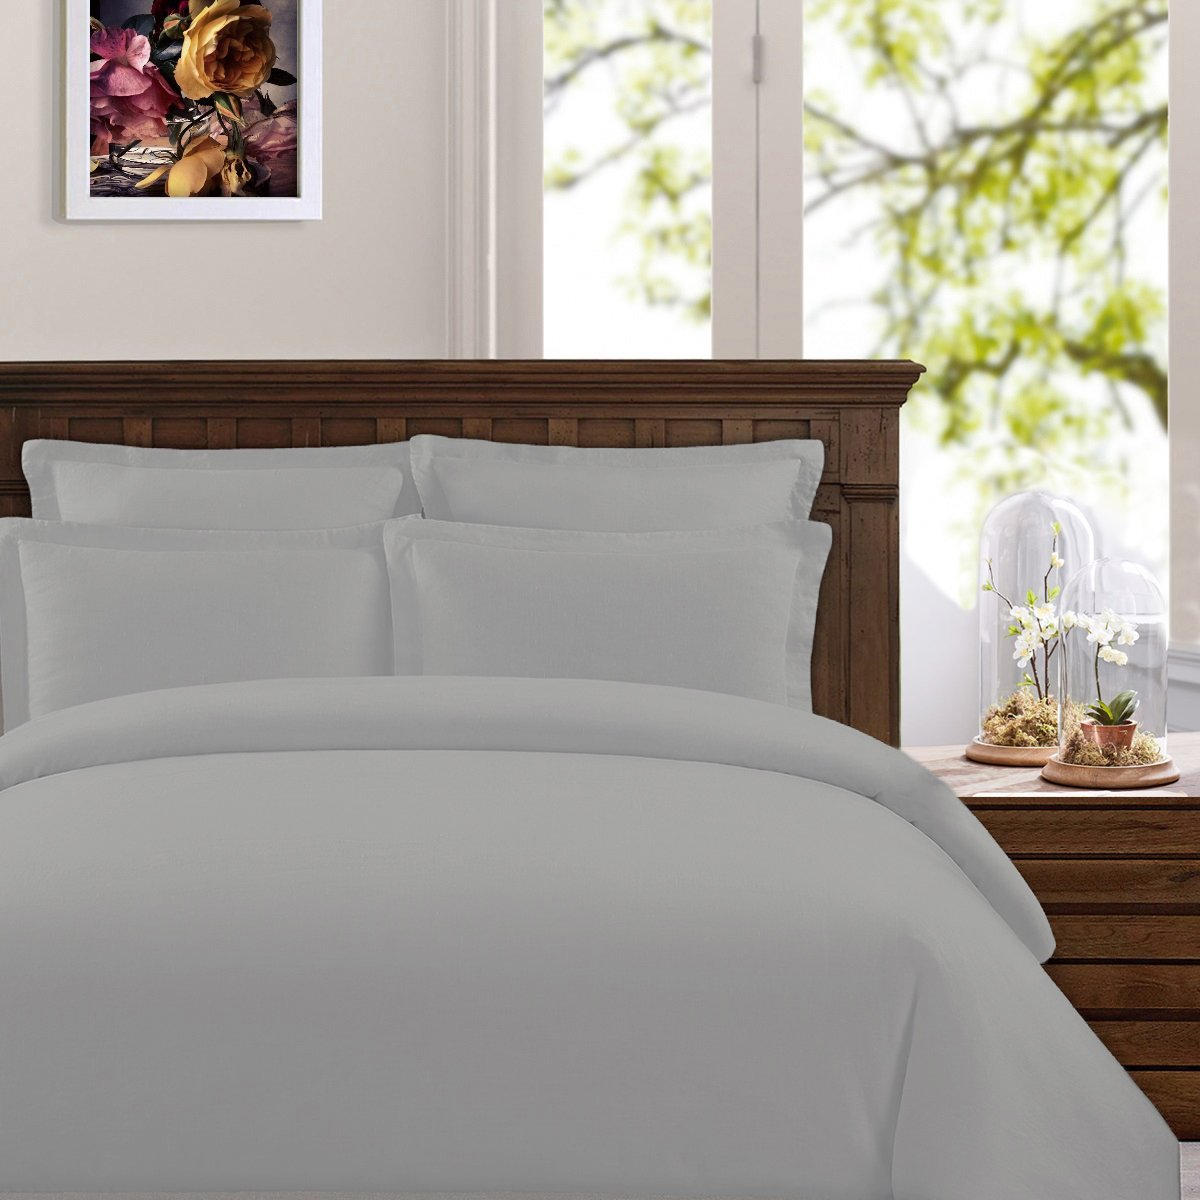 Peru Pima - 285 Thread Count - Percale - 100% Peruvian Pima Cotton - Duvet Cover - Twin/Twin XL, Slate